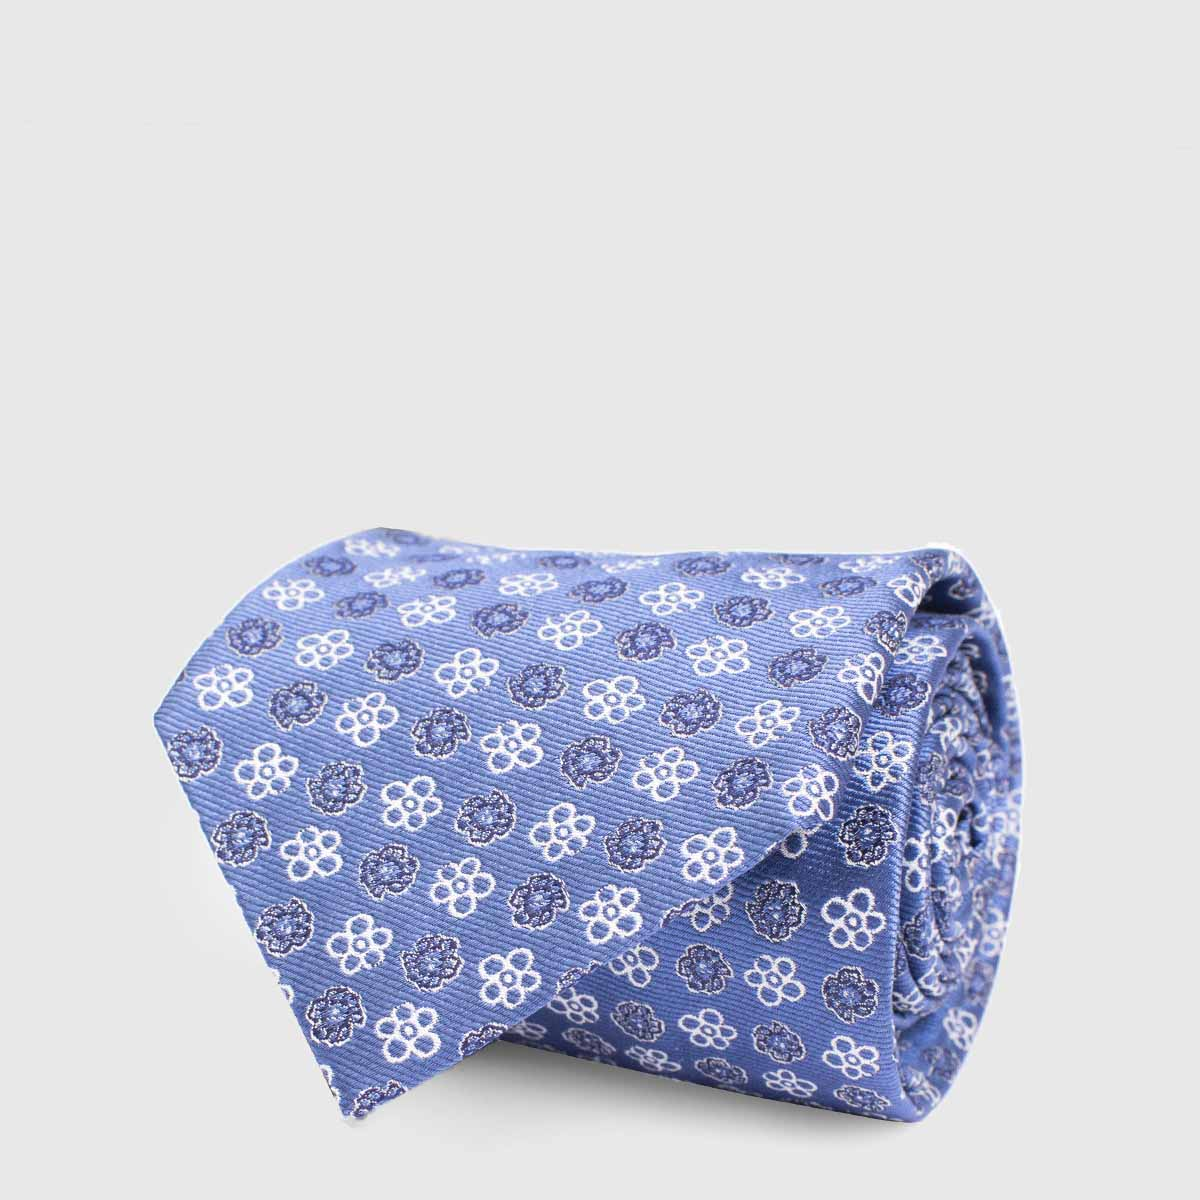 Blue 5-Folds Tie with floral print